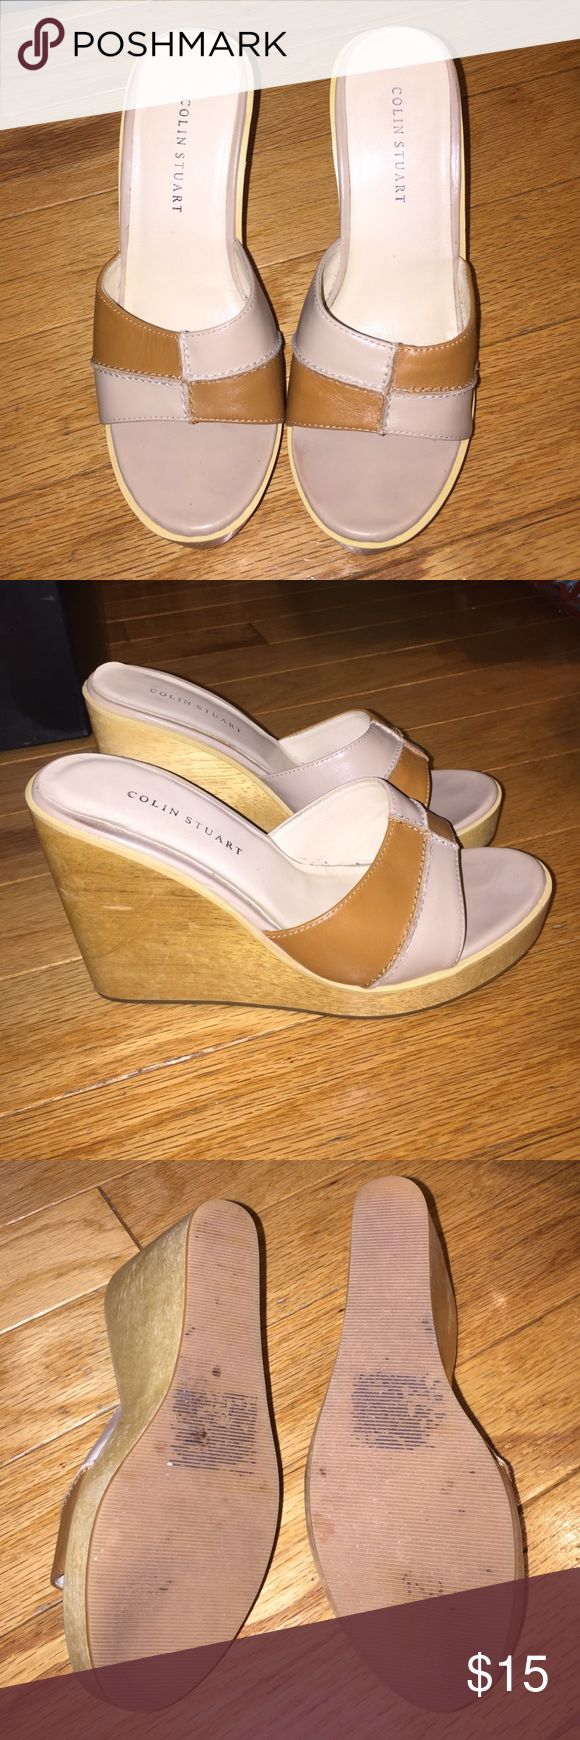 Colin Stuart Wedge Sandals - Size 6.5 Gently used Beige & Brown Colin Stuart Wood Wedge Platform Sandals in size 6.5. Only worn a few times. Photo of bottoms included and show limited wear and marks where original sticker was. Last picture shows one area on heel with slight lift to leather. Loved these for but post-twins not my size anymore. Please reach out with any questions. Colin Stuart Shoes Wedges